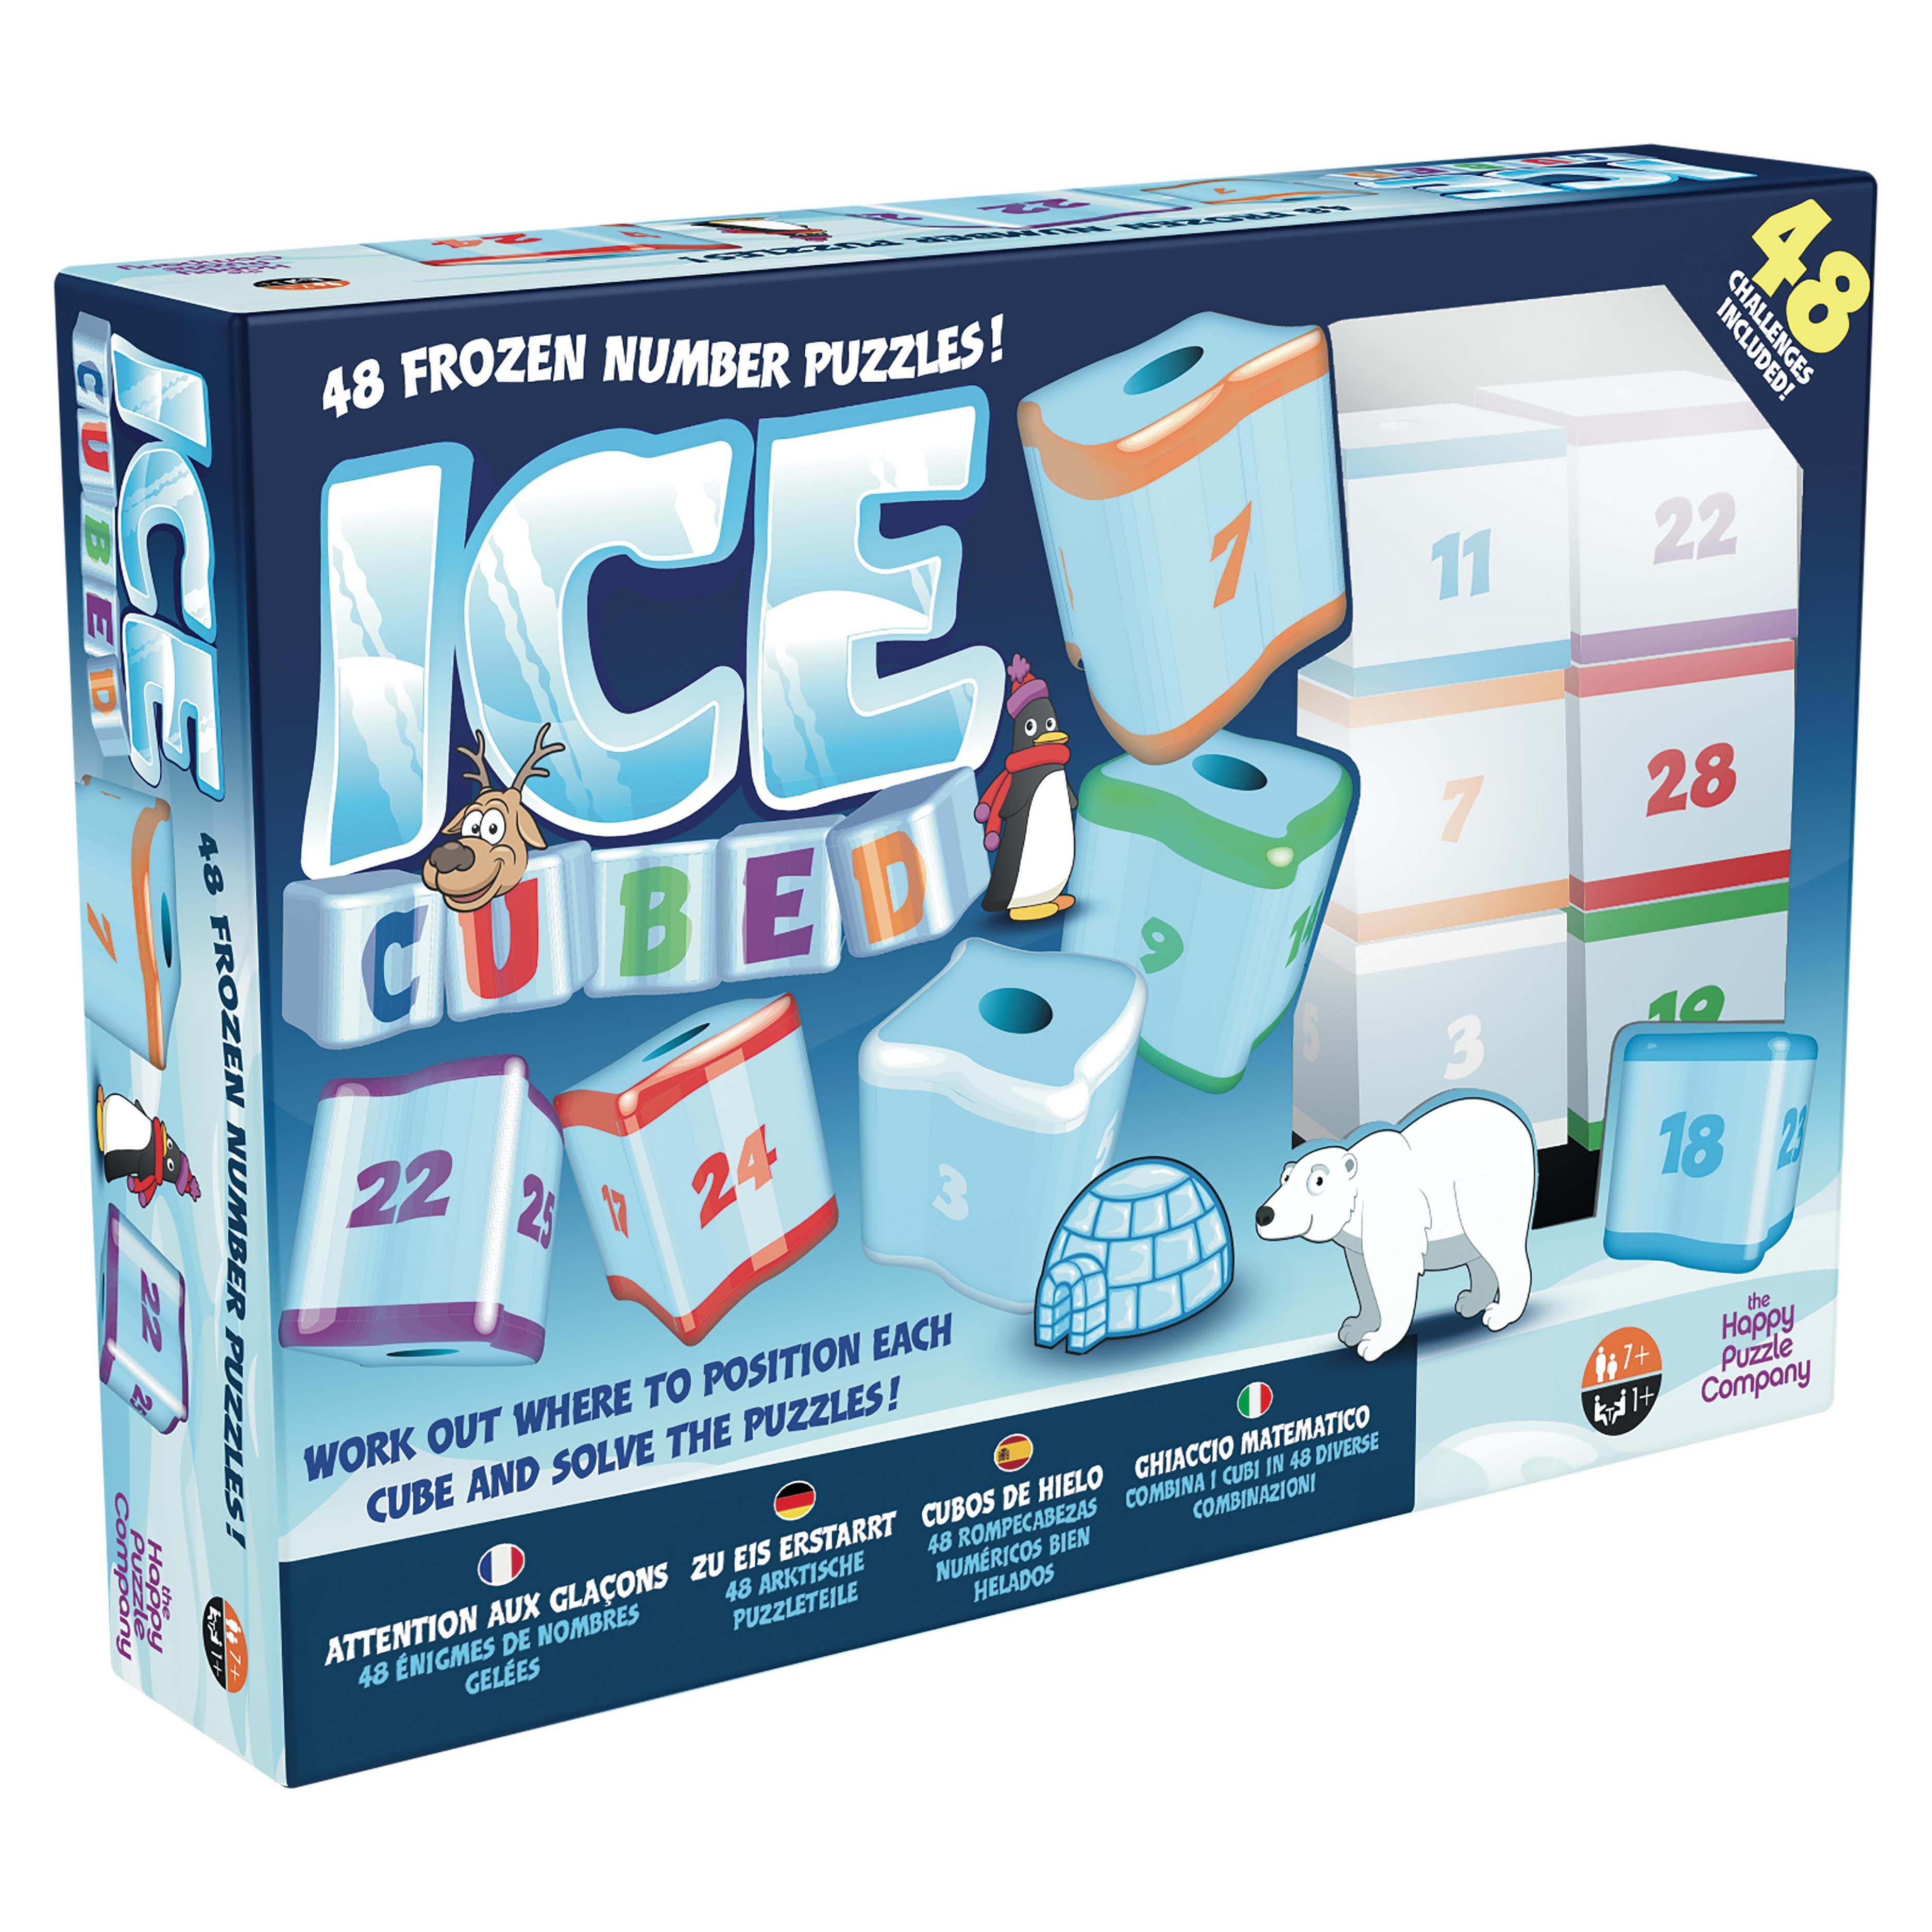 Ice cubed